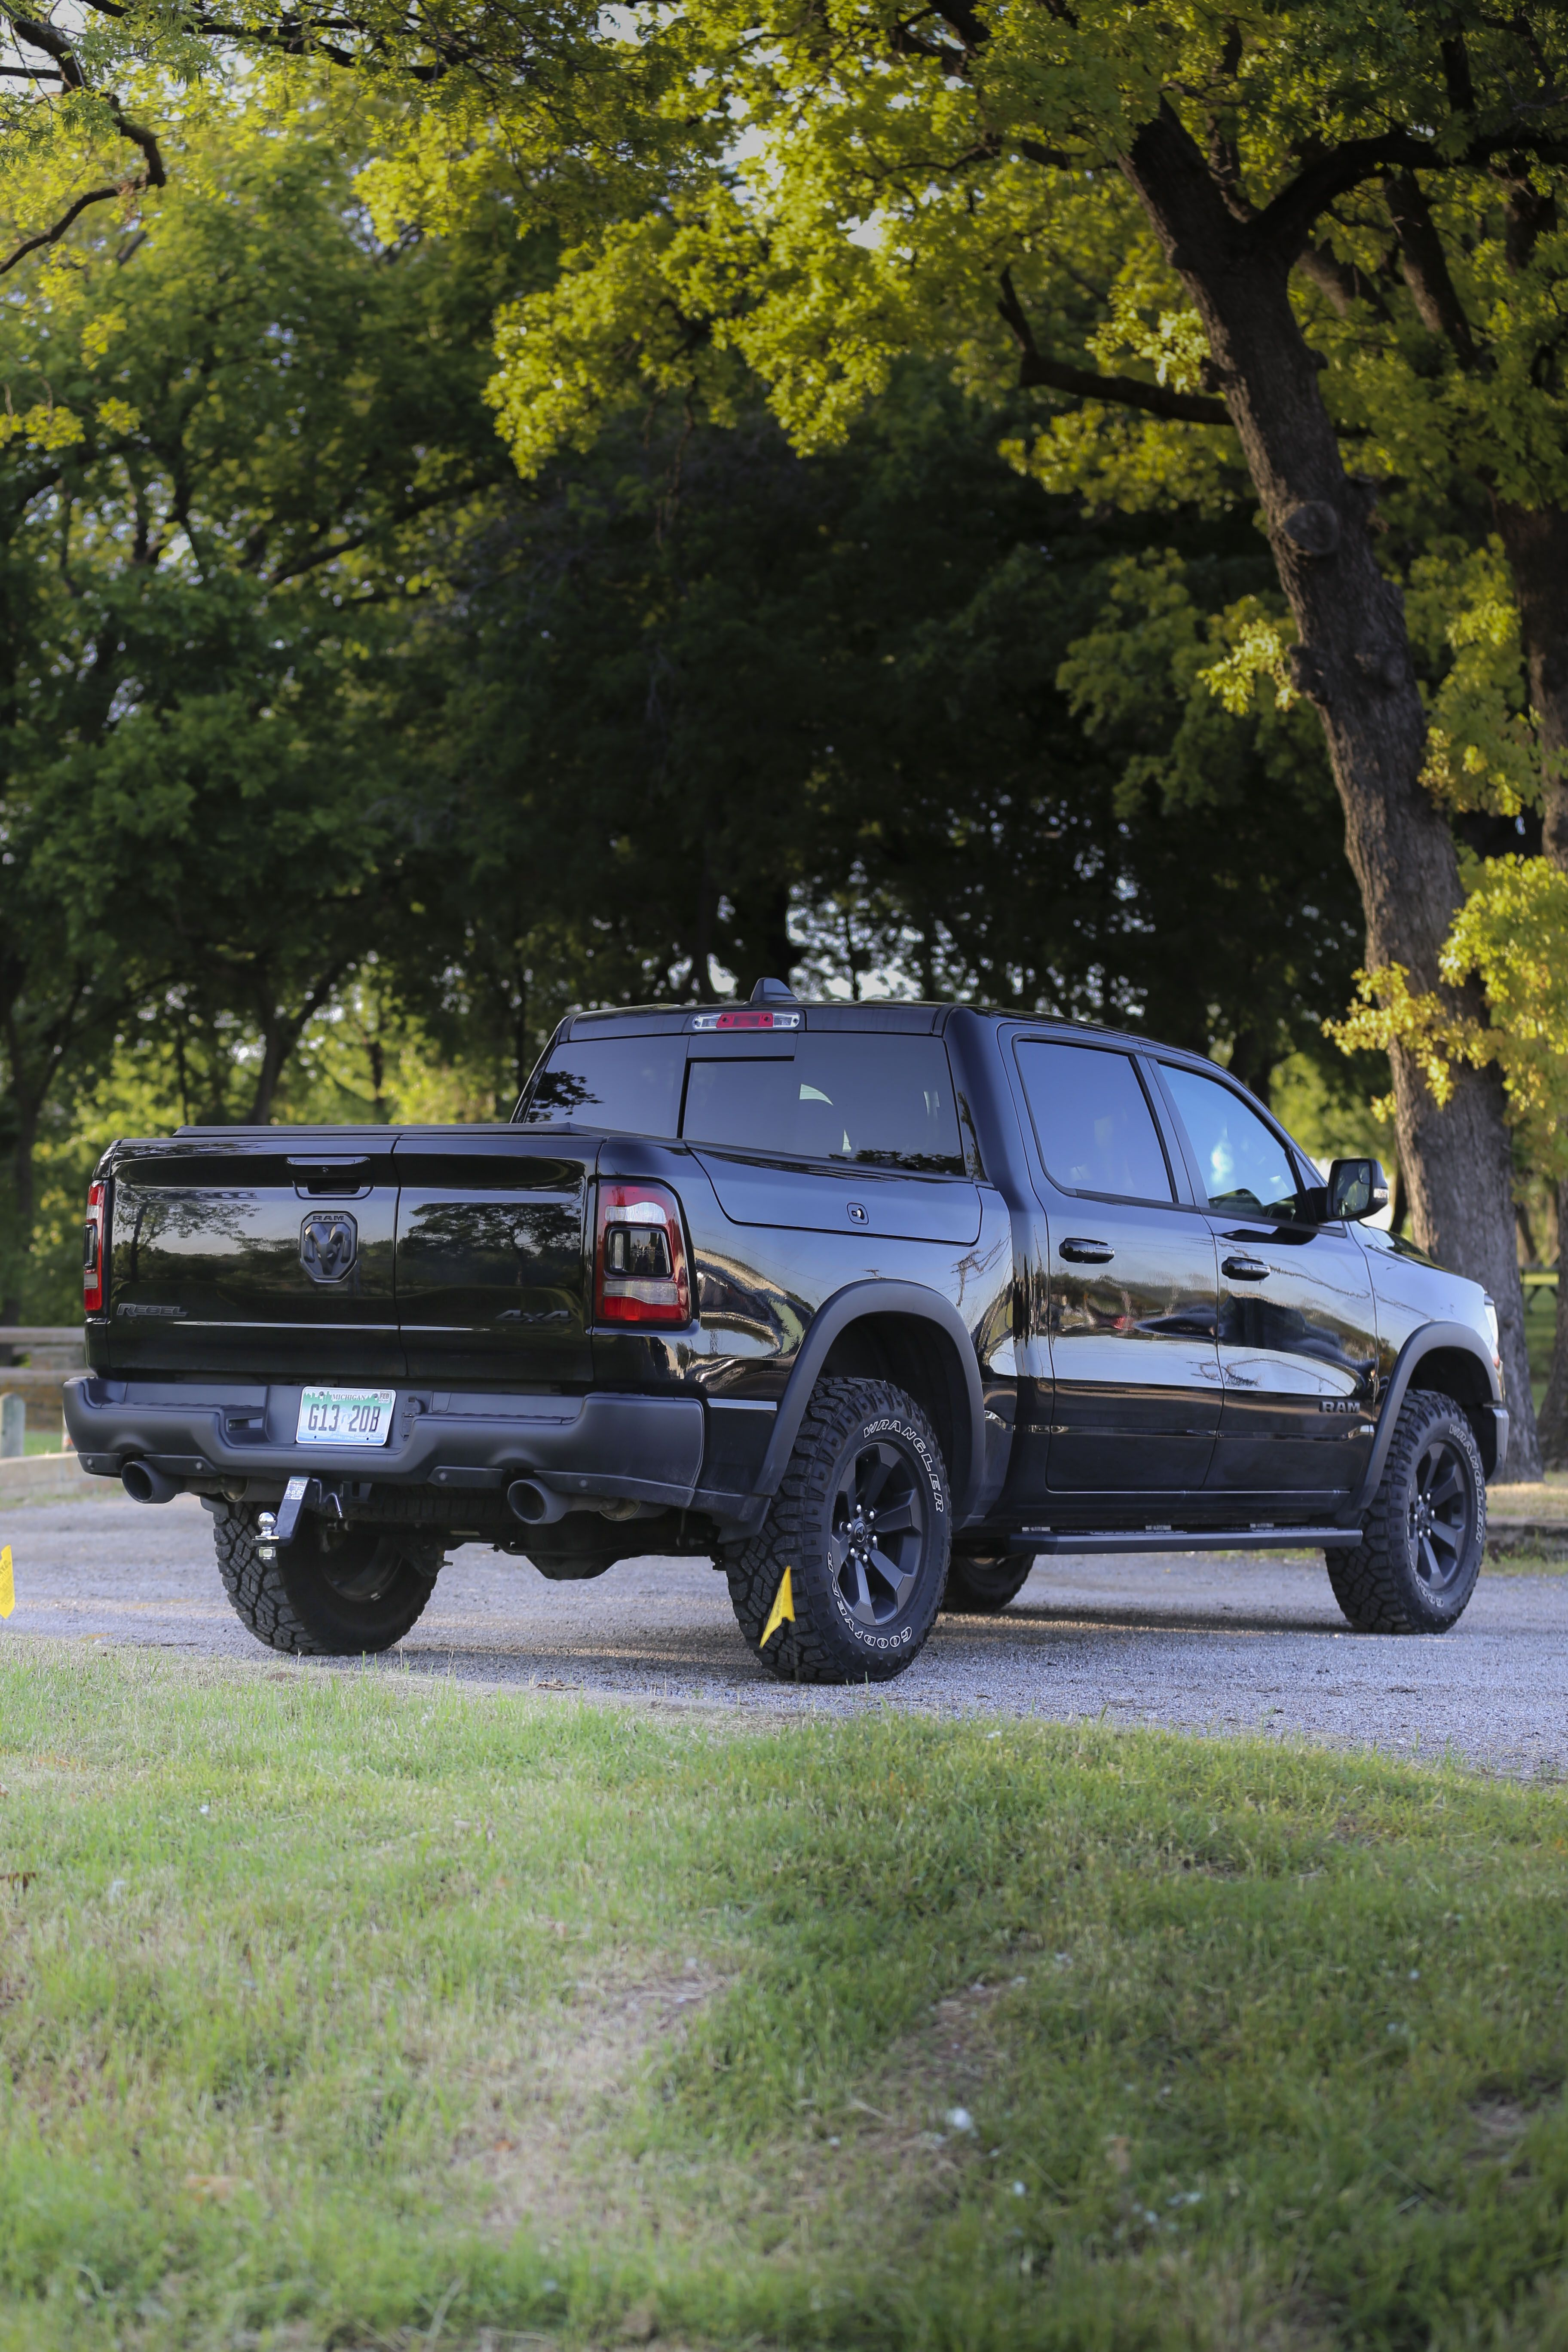 2020 Ram 1500 24 Inch Wheels : wheels, Rebel, EcoDiesel, Longterm, Enthusiast, Review, Photos